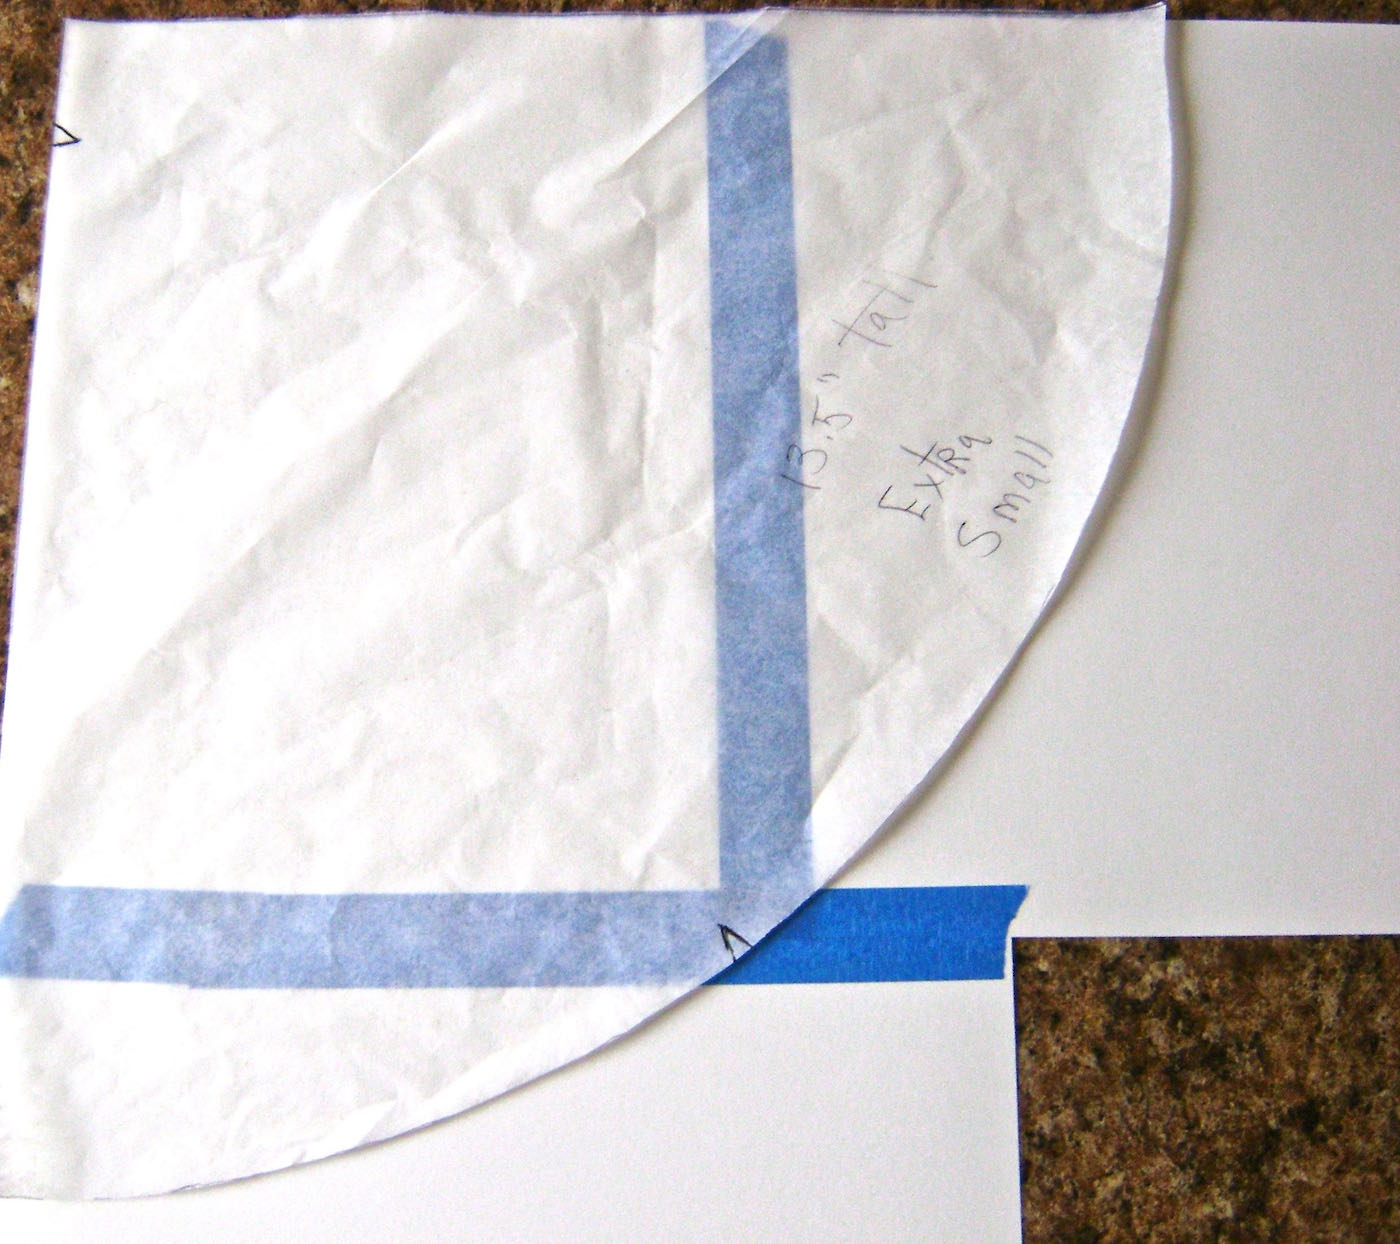 step 1 - Using Cyndy's template, cut out a cone using regular card stock. Piece together enough card stock with tape to create a page large enough to fit the size of your cone. My cone size is extra small and it required three sheets of card stock.